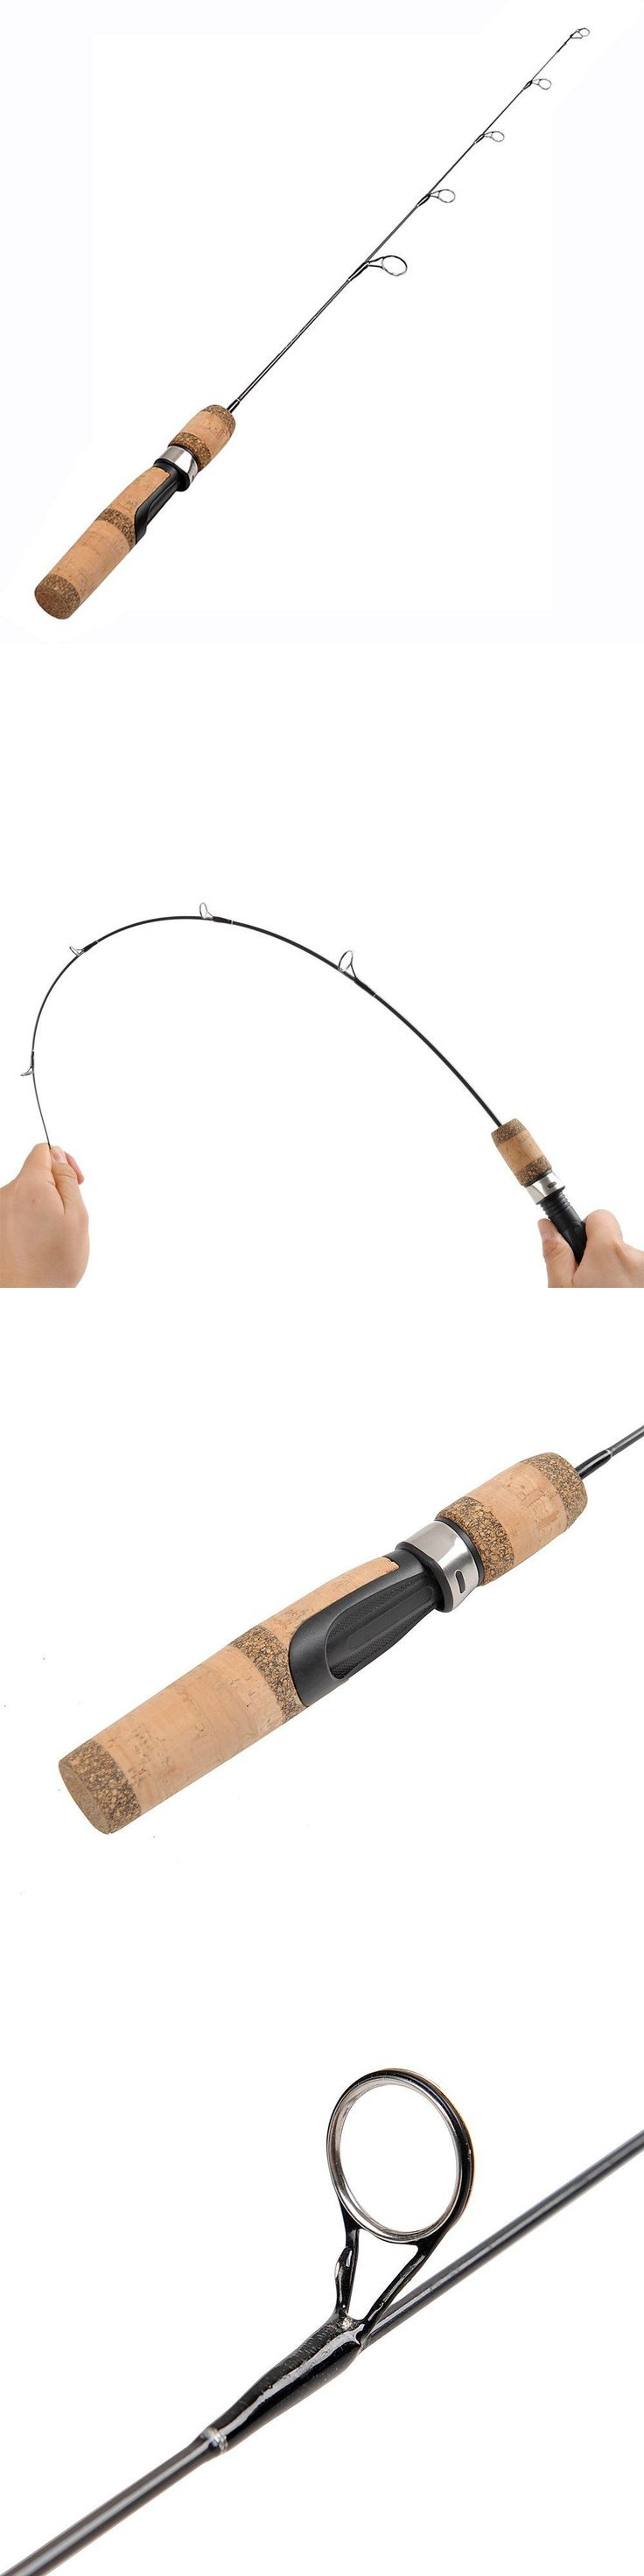 Ice Fishing Rods 179947: Ice Fishing Rod 30 Inch Medium Power Light Strong Sensitive Fish Sport Outdoor BUY IT NOW ONLY: $32.99